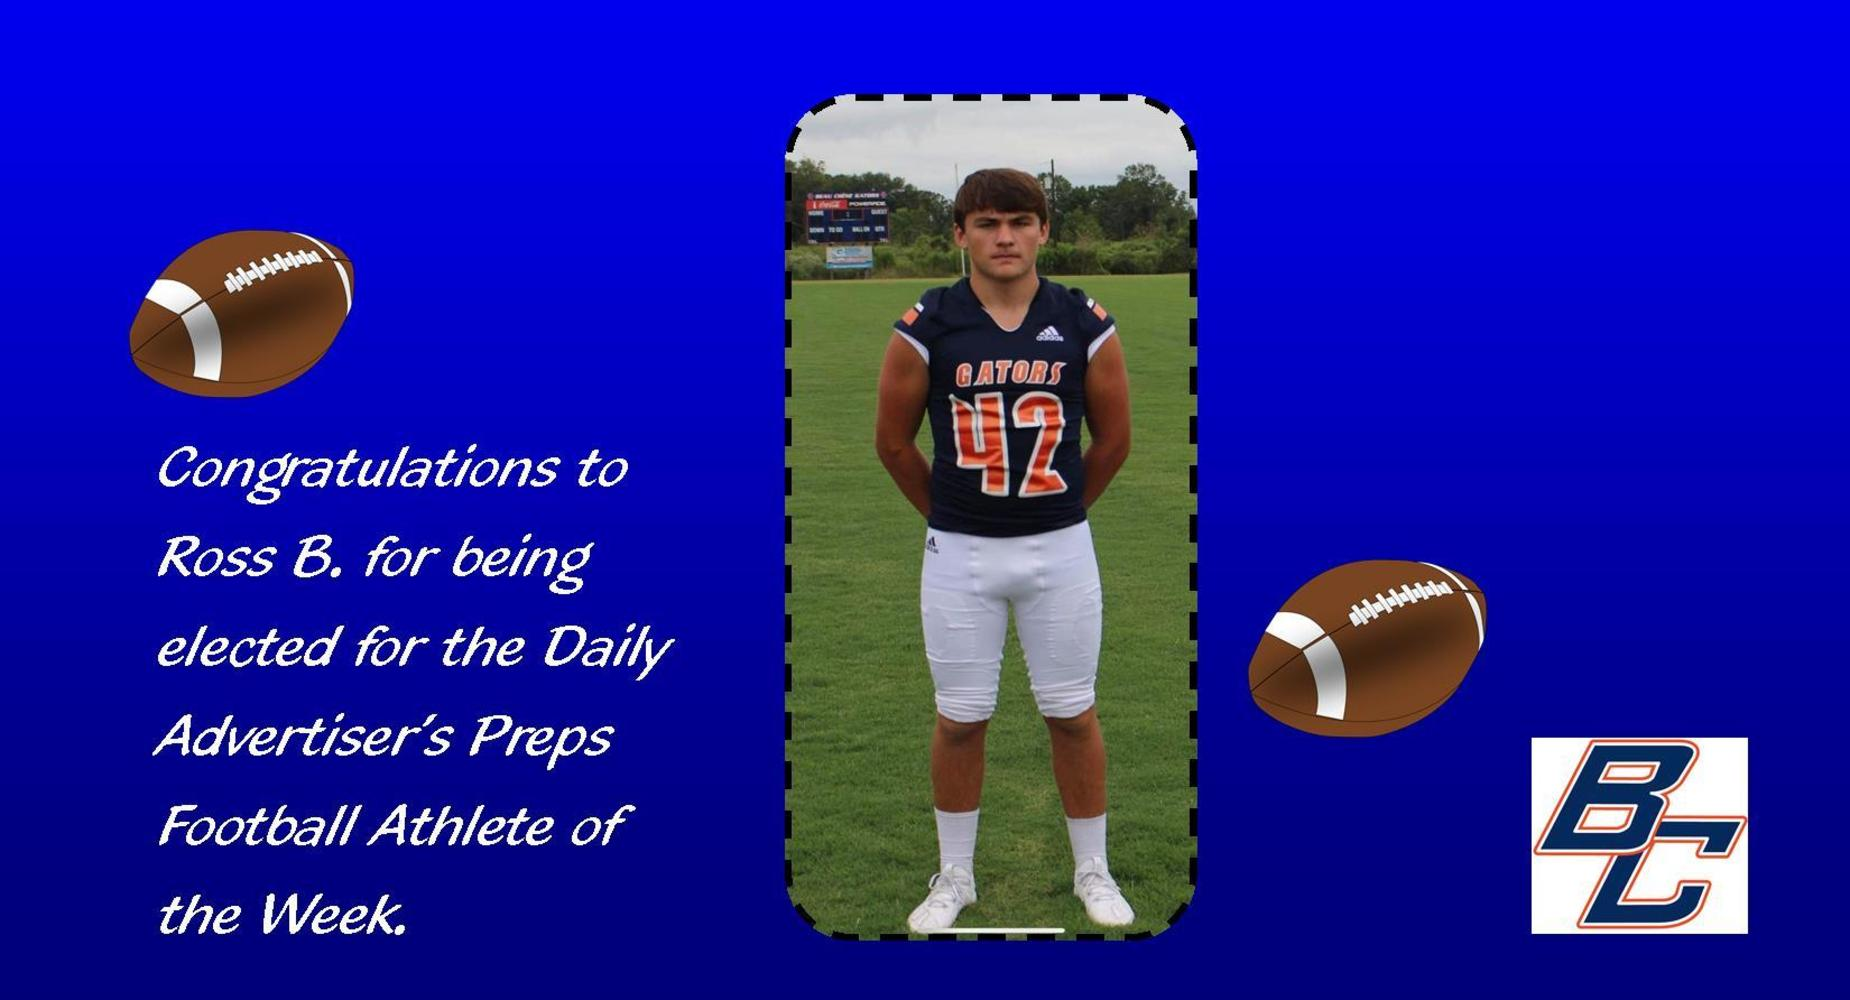 Ross Bertrand elected Athlete Player of the Week for Daily Advertiser